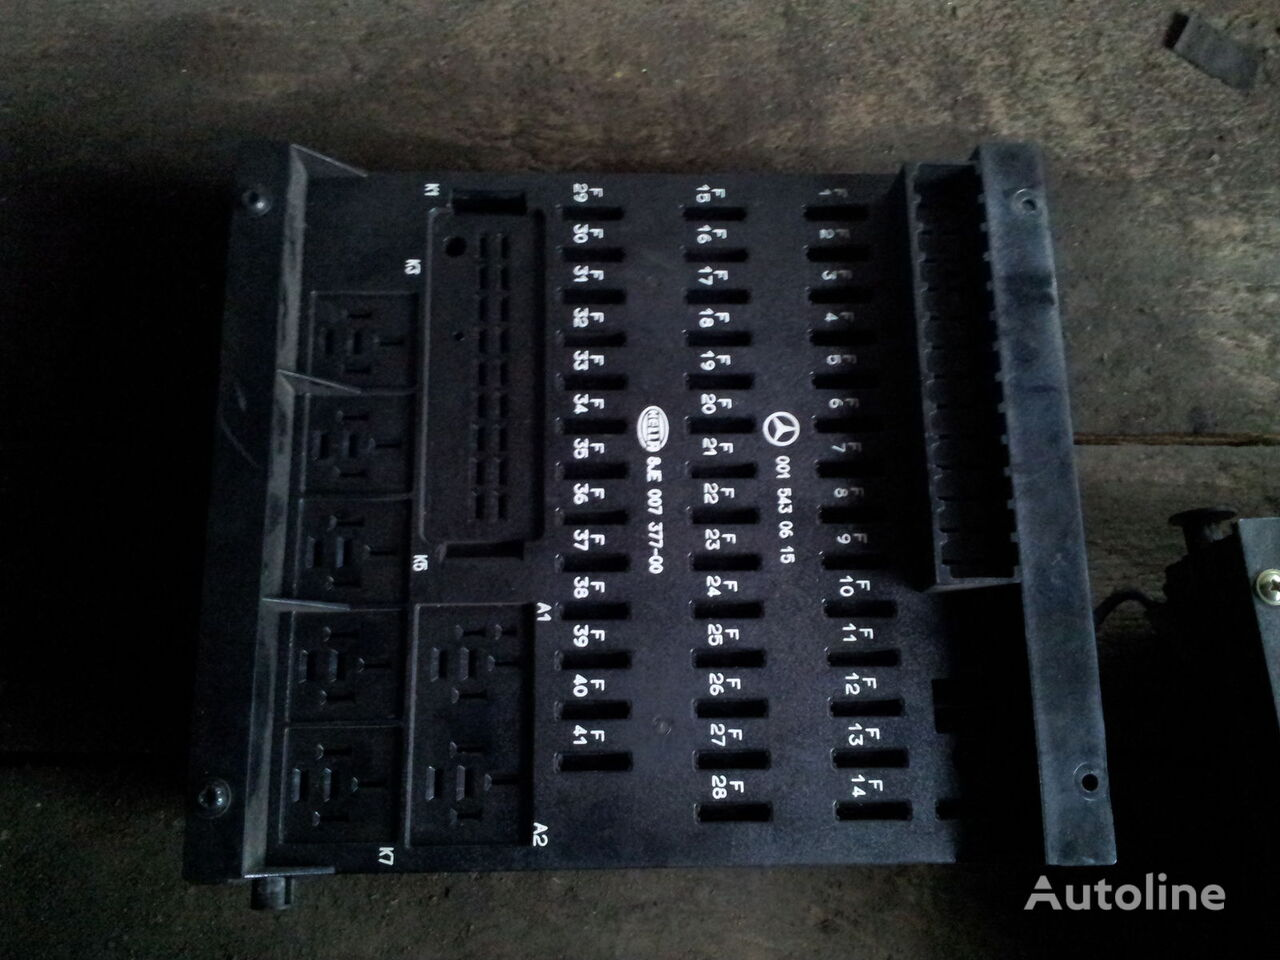 spare part control unitMERCEDES BENZ fuse boks central electric control unit 1_big 17091513124451257000 mercedes benz actros fuse box cover parts numbers mercedes  at nearapp.co